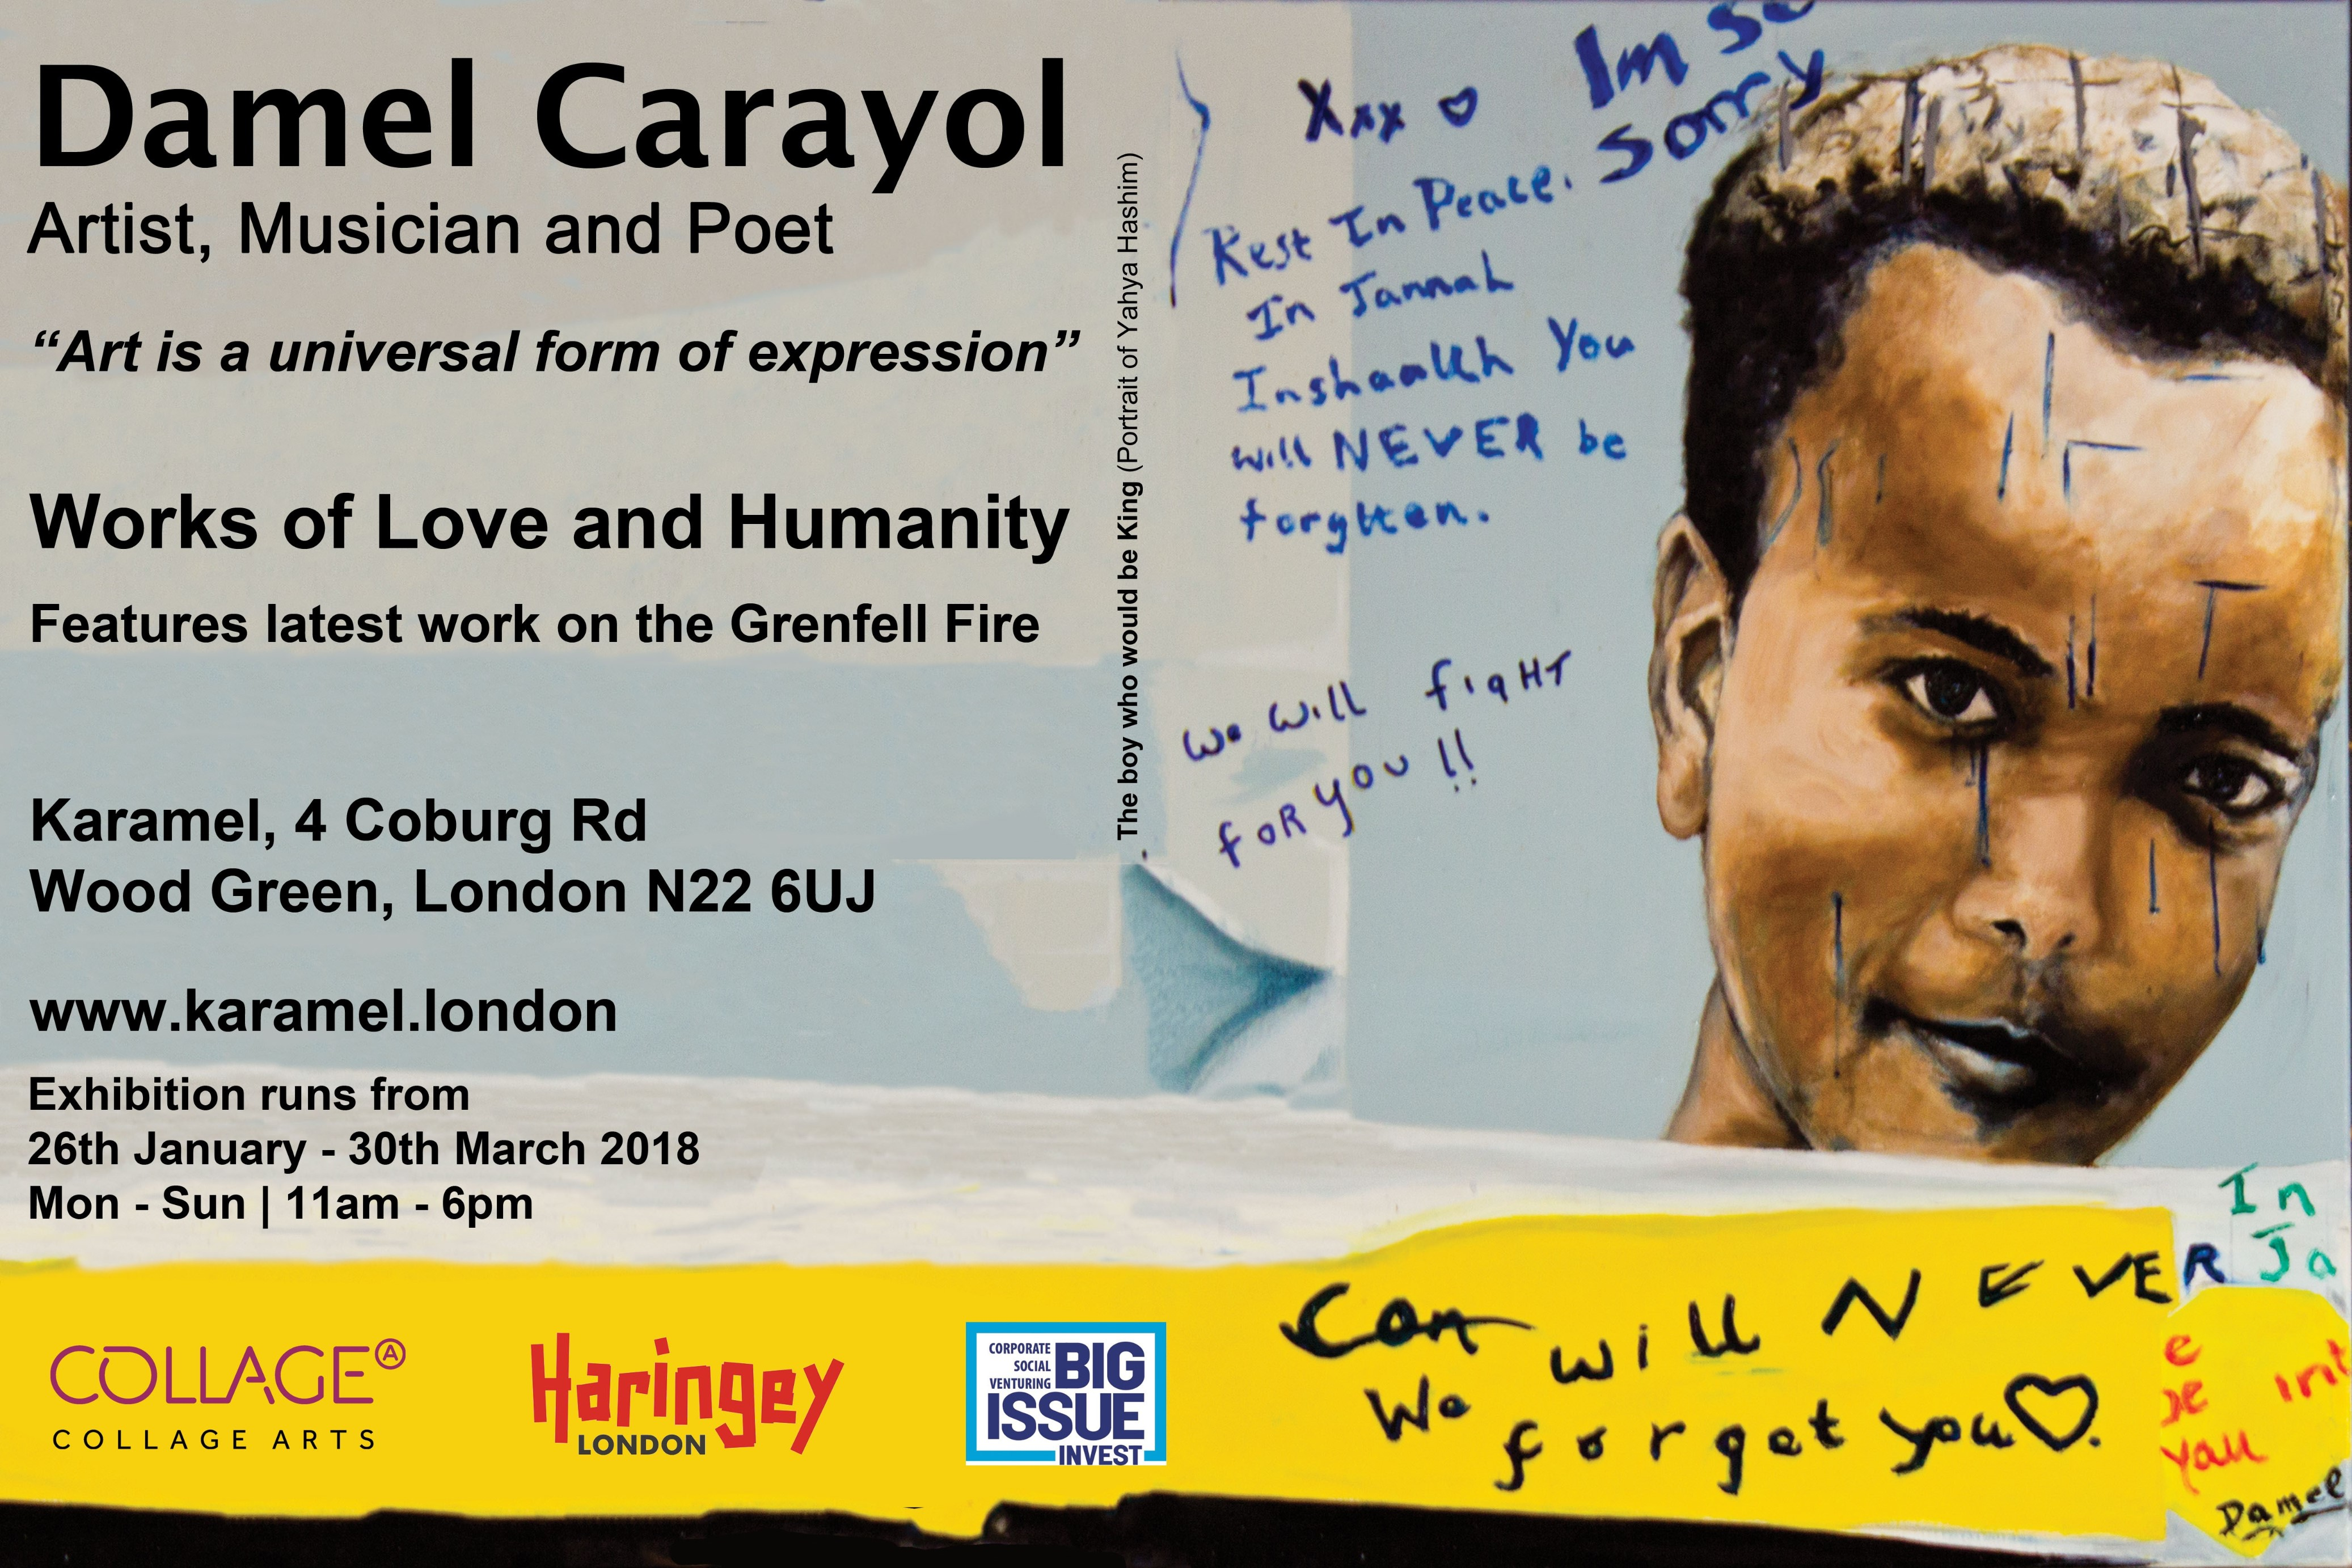 Damel Carayol - Love of Works and Humanity exhibition at Karamel. Runs until 30 March 2018, 11am to 6pm